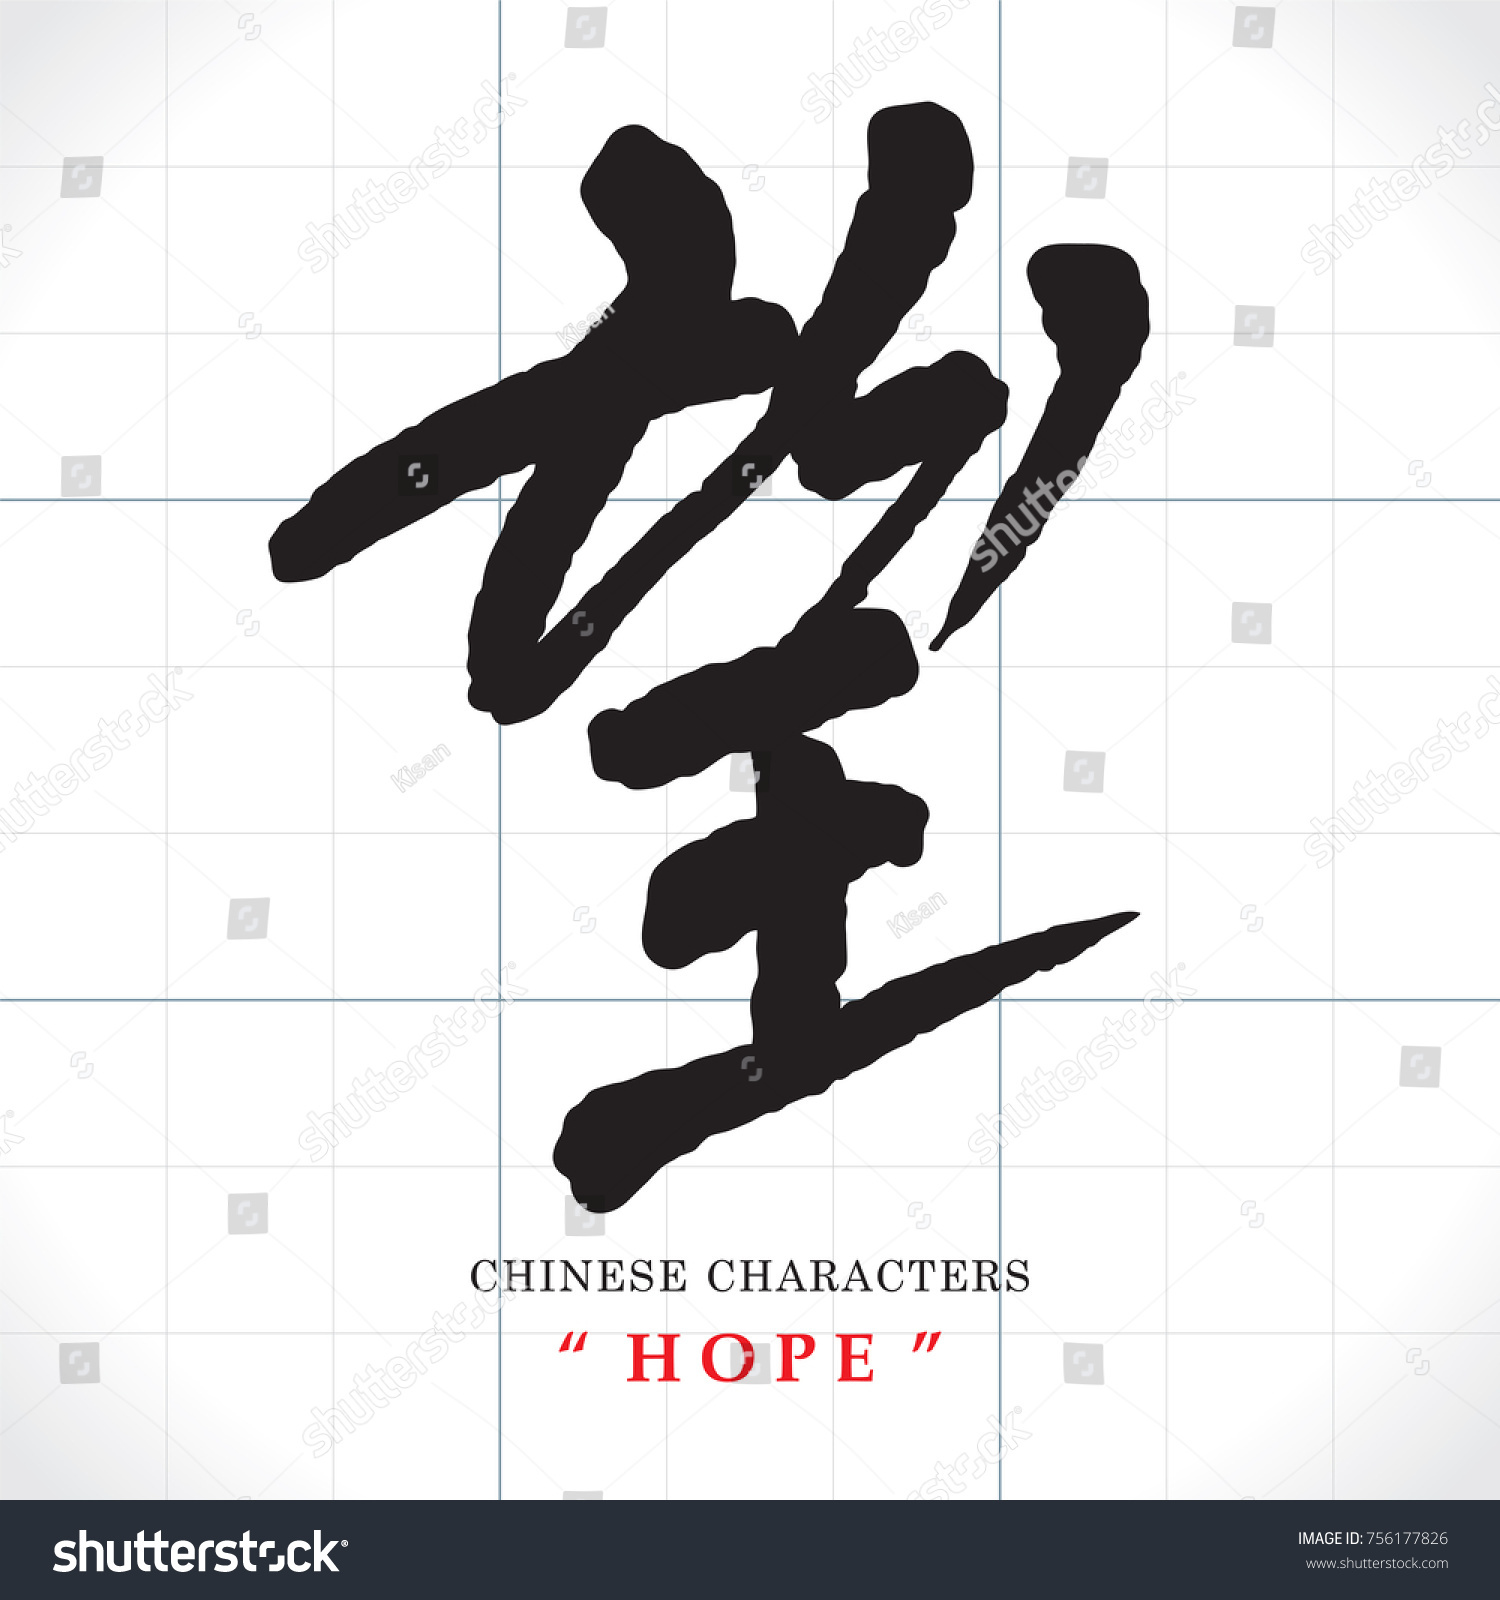 Vector Chinese Characters Hope Stock Vector Royalty Free 756177826